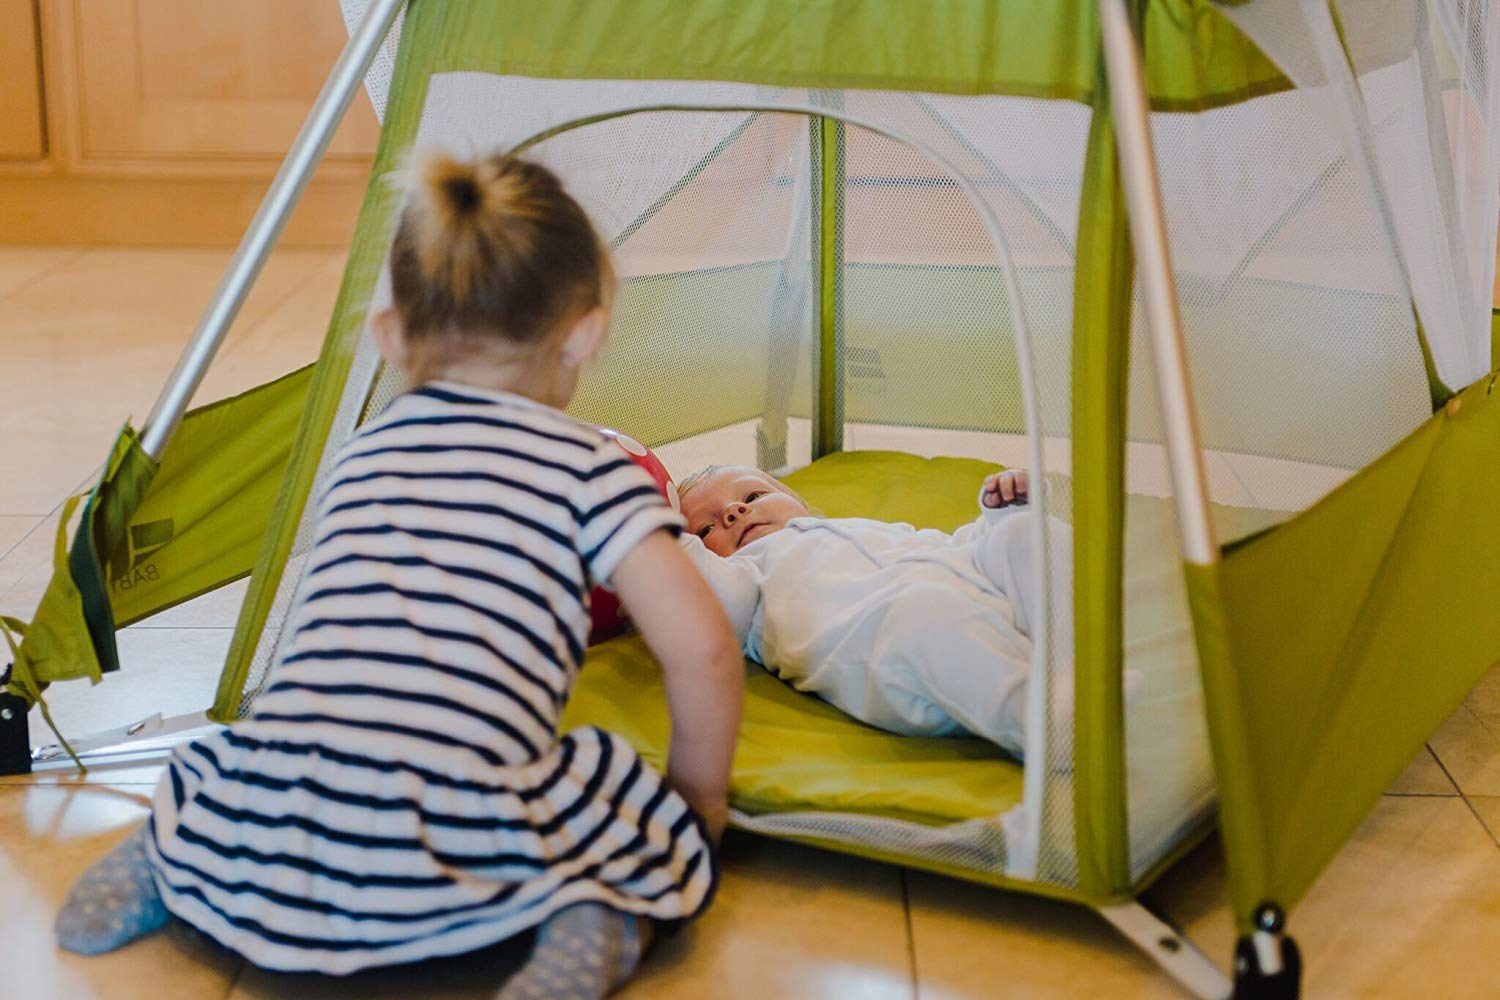 BabyHub Travel Cot with Circus Tepee and Mosquito Net, Green BabyHub A travel cot, mosquito proof space and reuse as a play tepee Lightweight and easy to put up and fold in seconds Includes extra padded seam-free mat for comfort 4